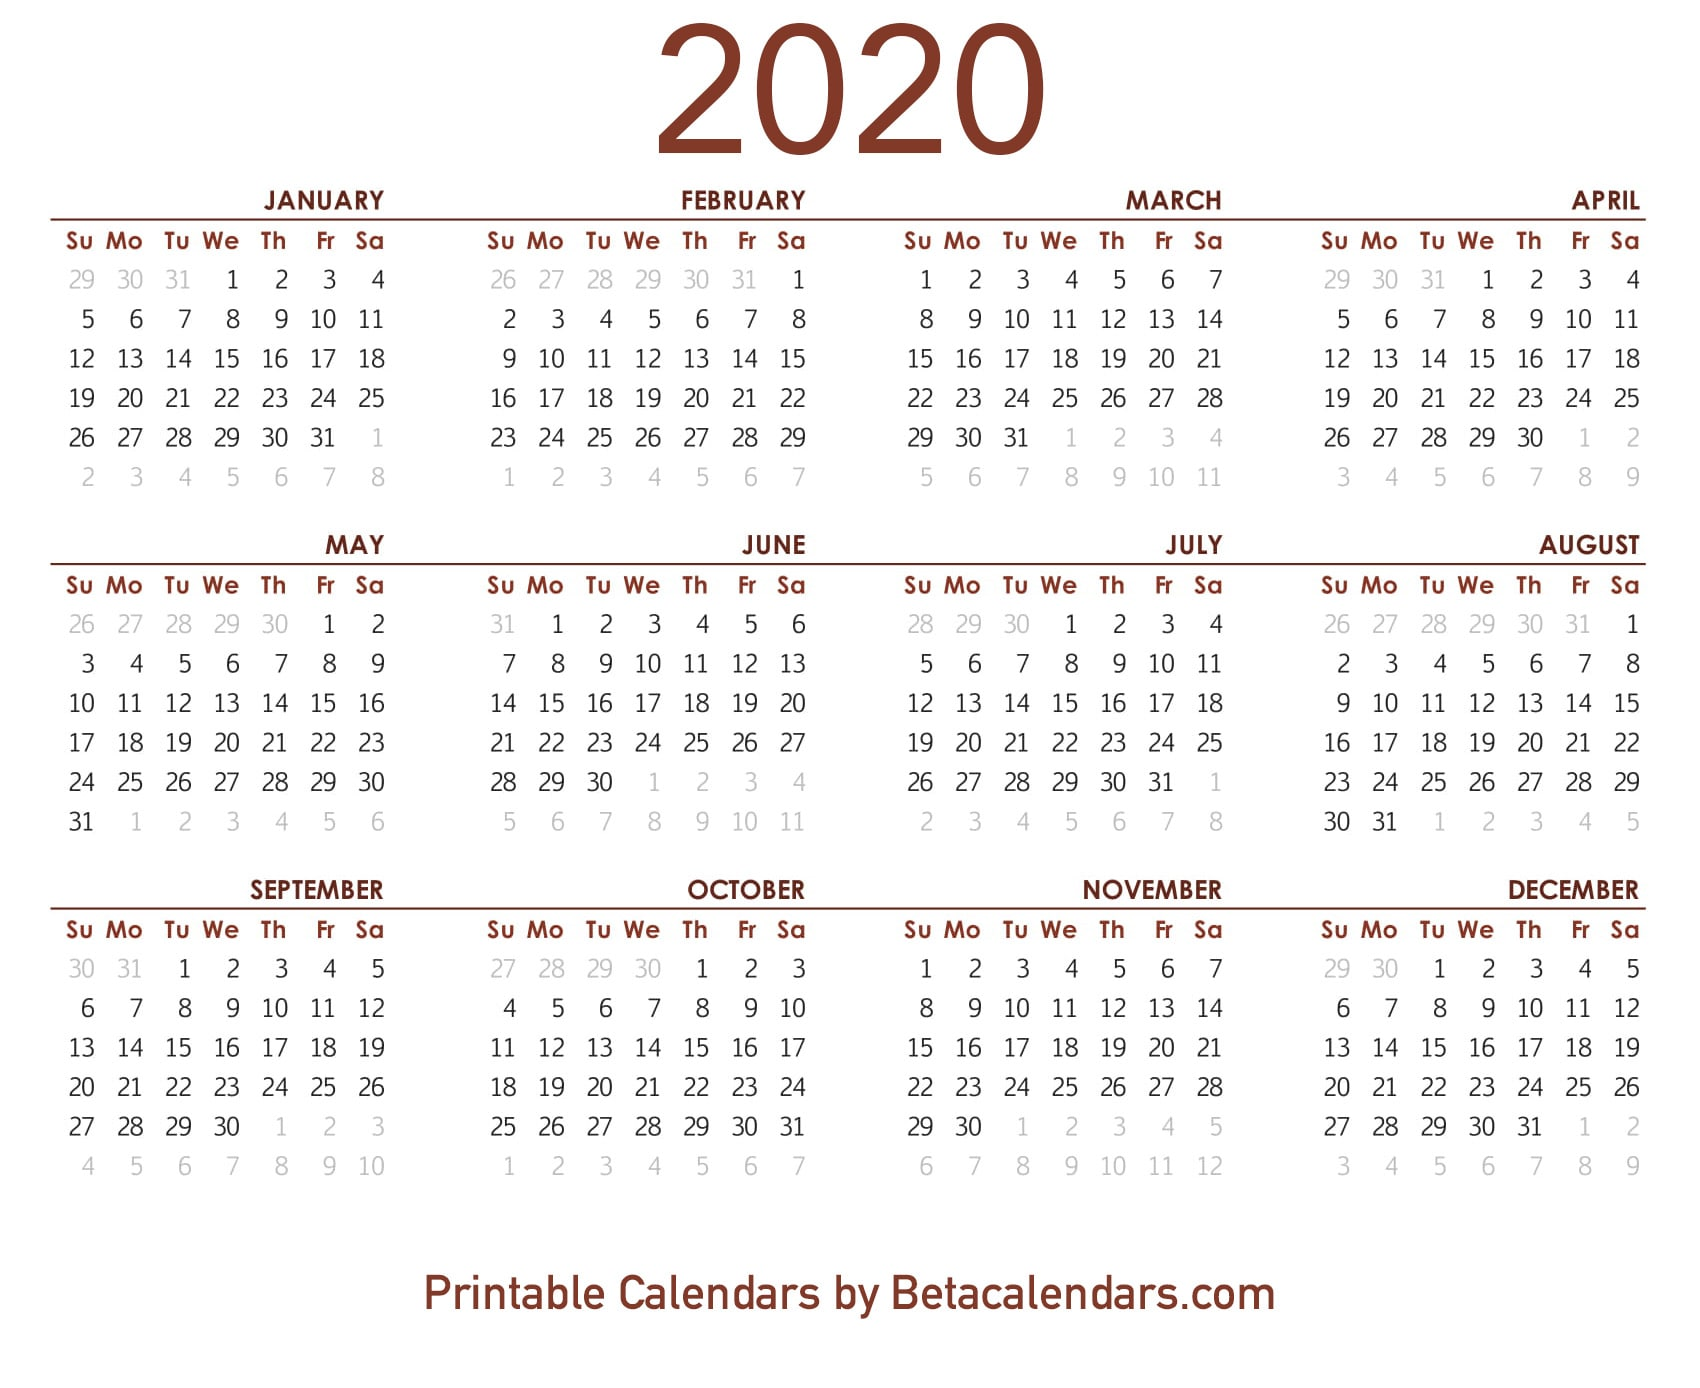 graphic relating to Printable 2020 Calendar named 2020 Calendar - Beta Calendars